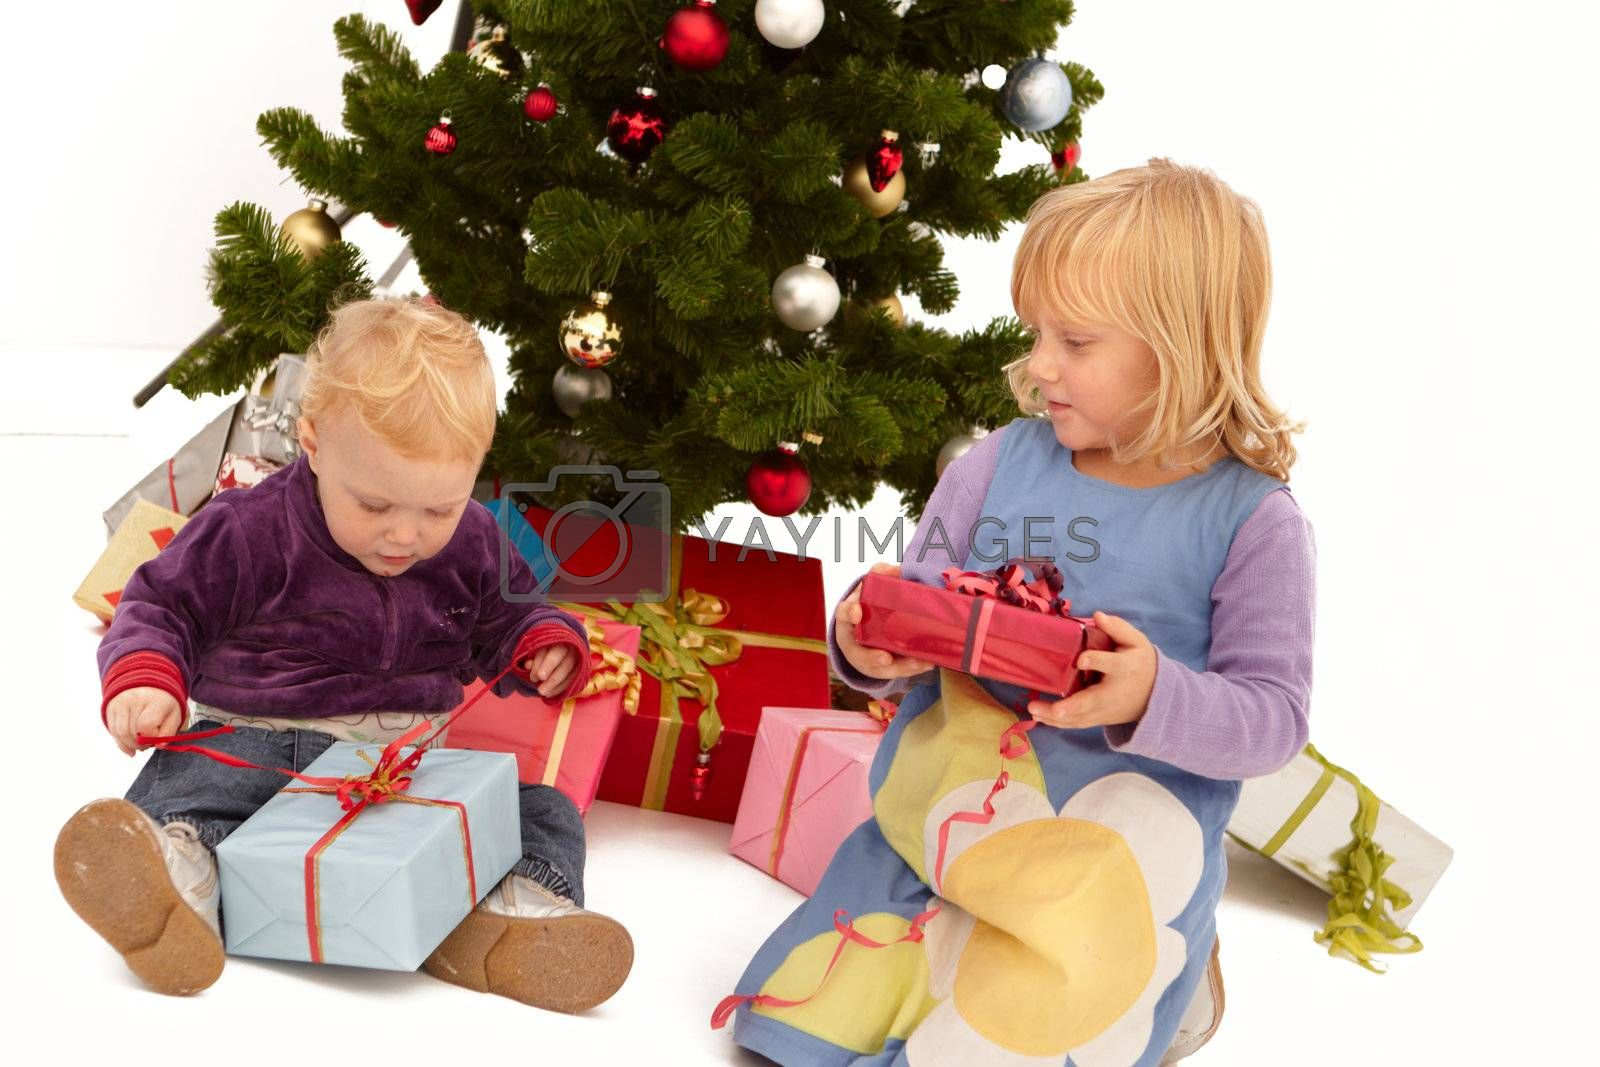 Royalty free image of Christmas - Kids opening presents under tree by FreedomImage